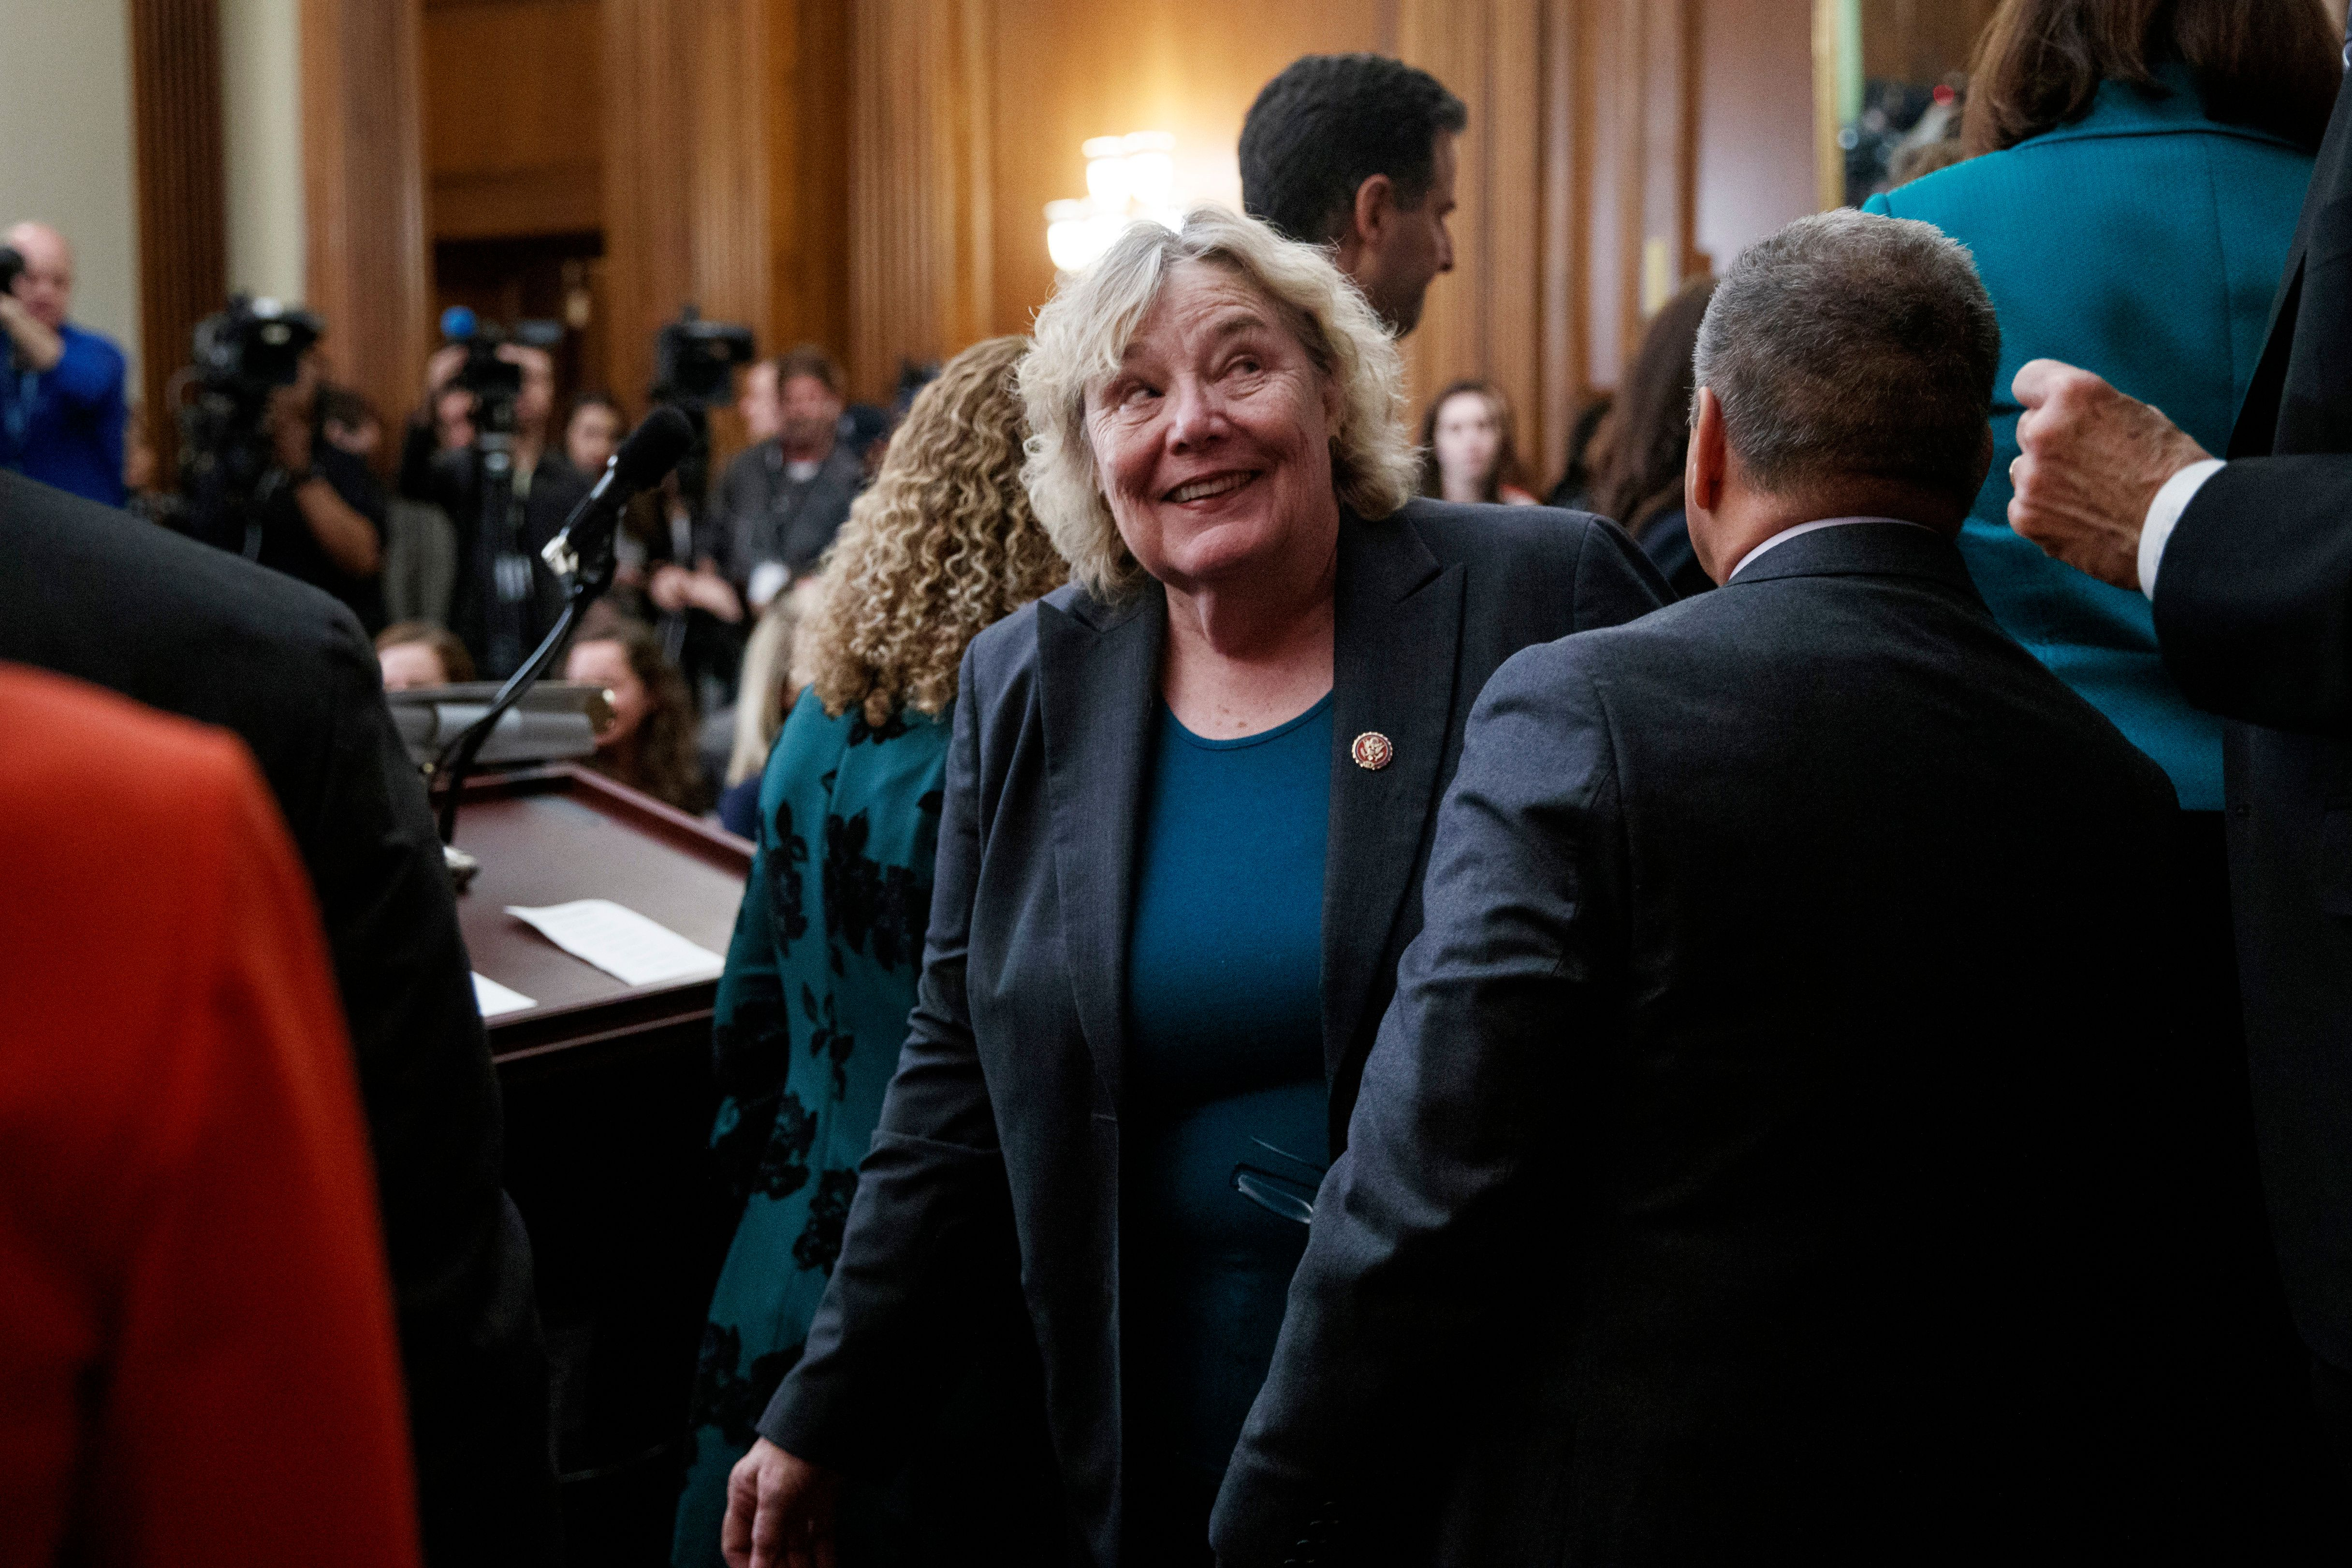 Rep. Zoe Lofgren, D-Calif., turns to her Democratic colleagues at the conclusion of a news conference on Capitol Hill in Washington, Friday, Jan. 4, 2019, about Introduction of H.R. 1 - For the People Act. (AP Photo/Carolyn Kaster)